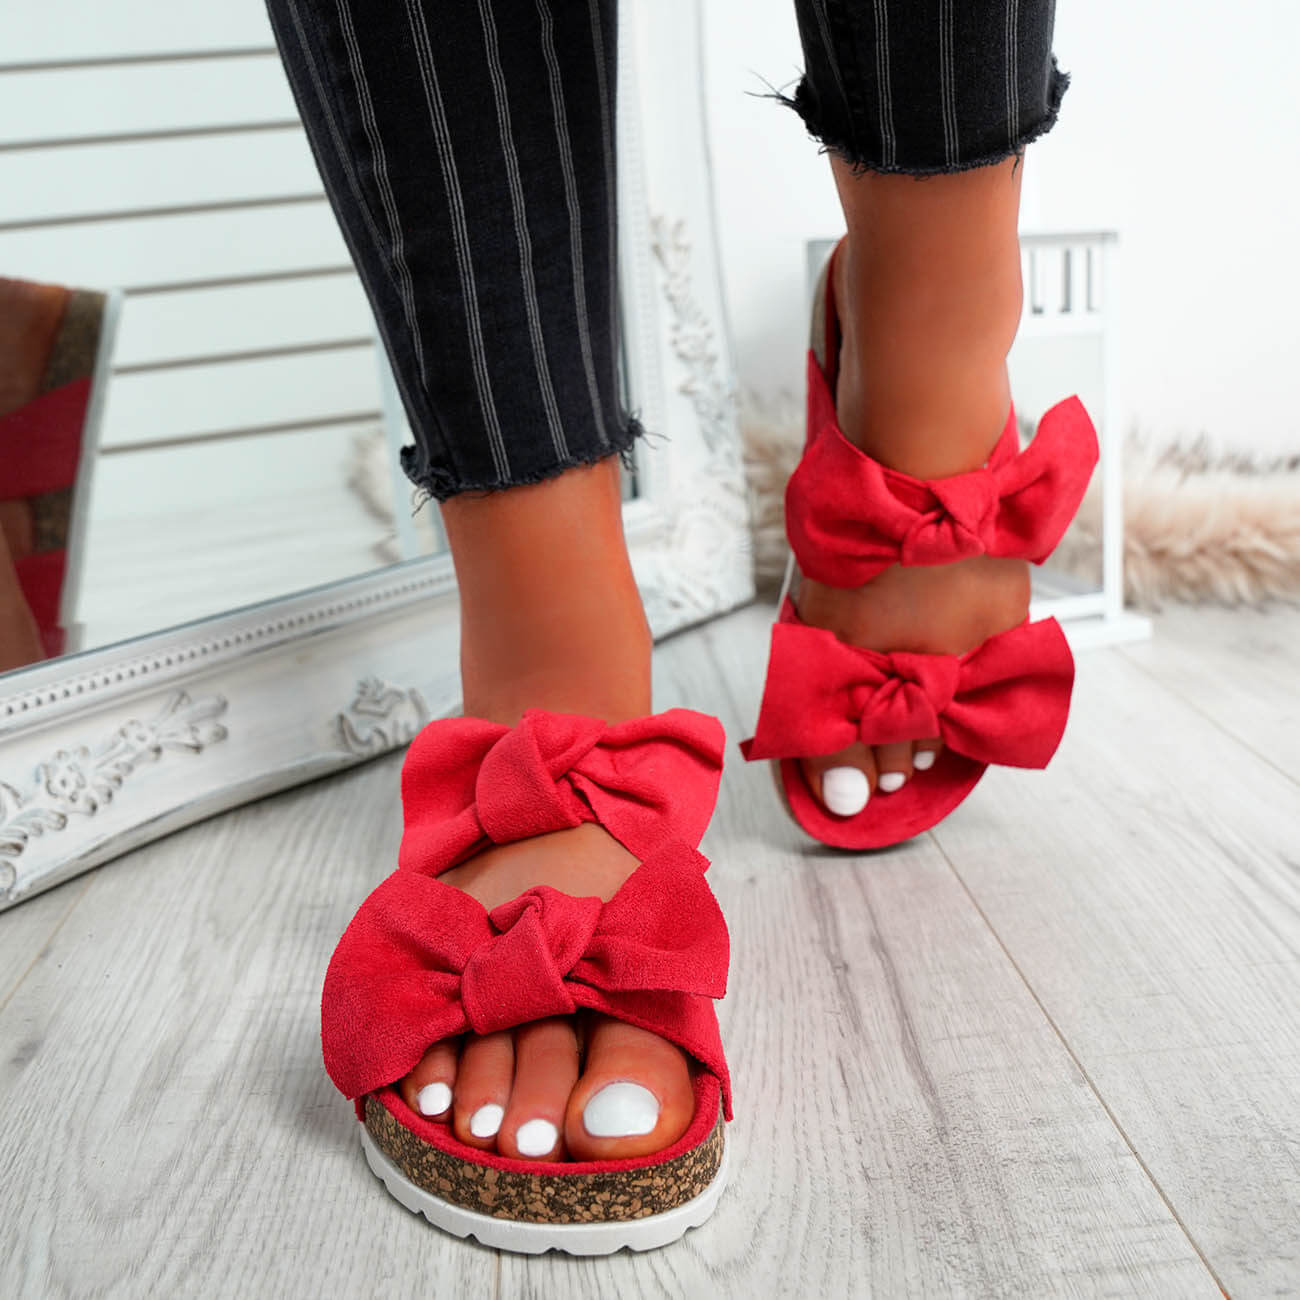 WOMENS-LADIES-PEEP-TOE-SLIP-ON-DOUBLE-BOW-FLAT-SANDALS-PARTY-CLUB-SUMMER-SHOES thumbnail 43